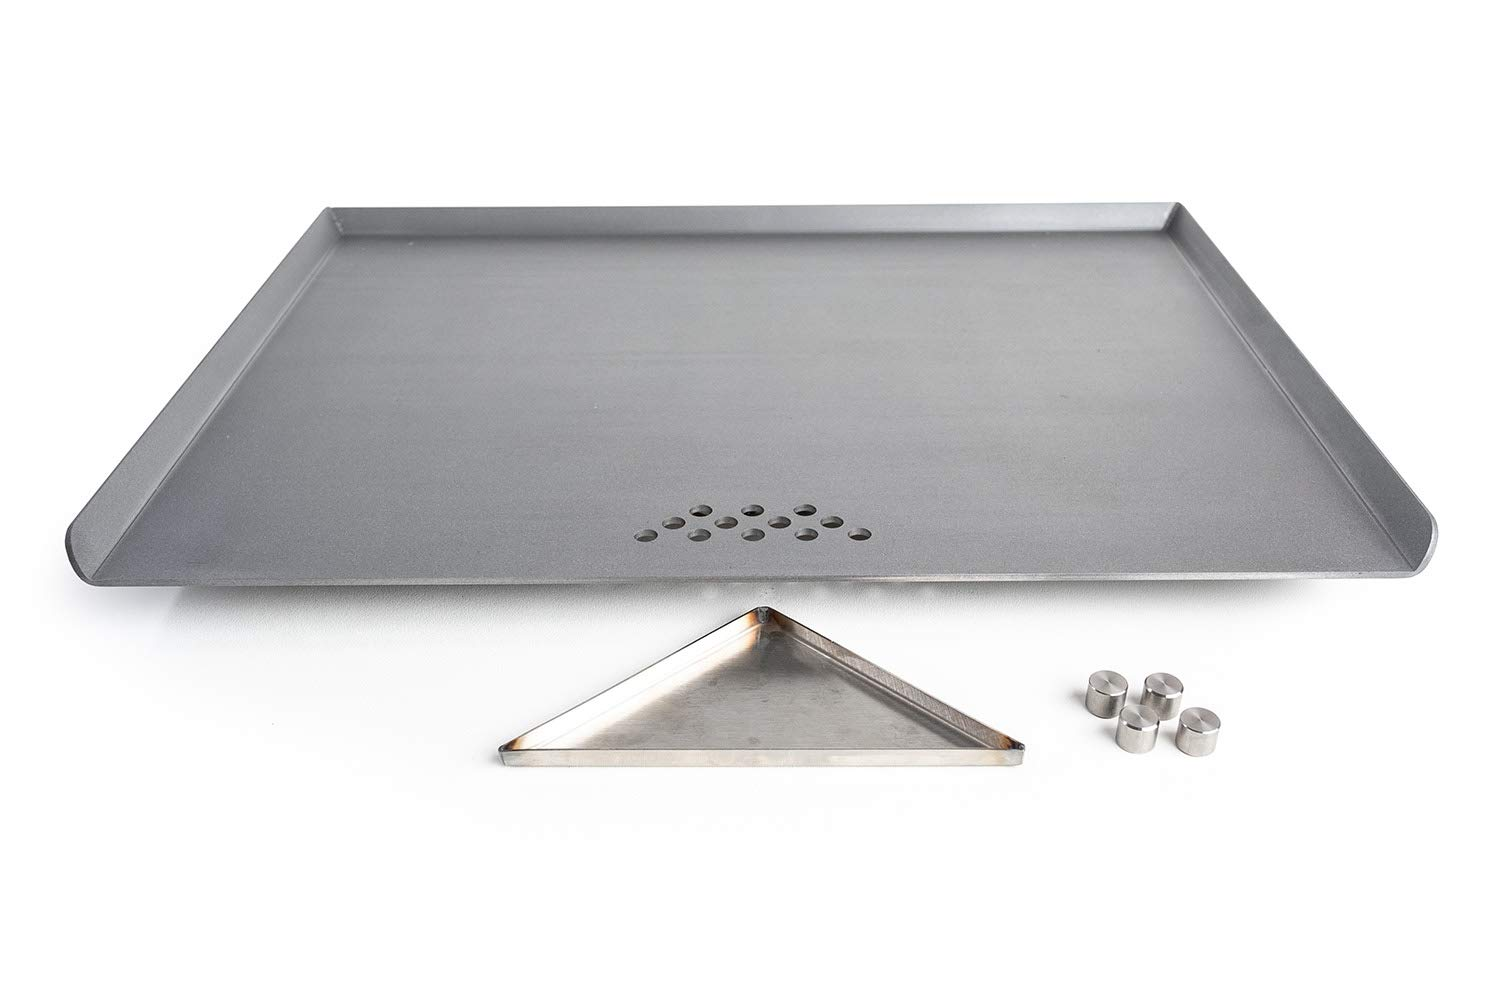 Stove Flat Top Griddle for Glass Ceramic Radiant Range by Steelmade USA